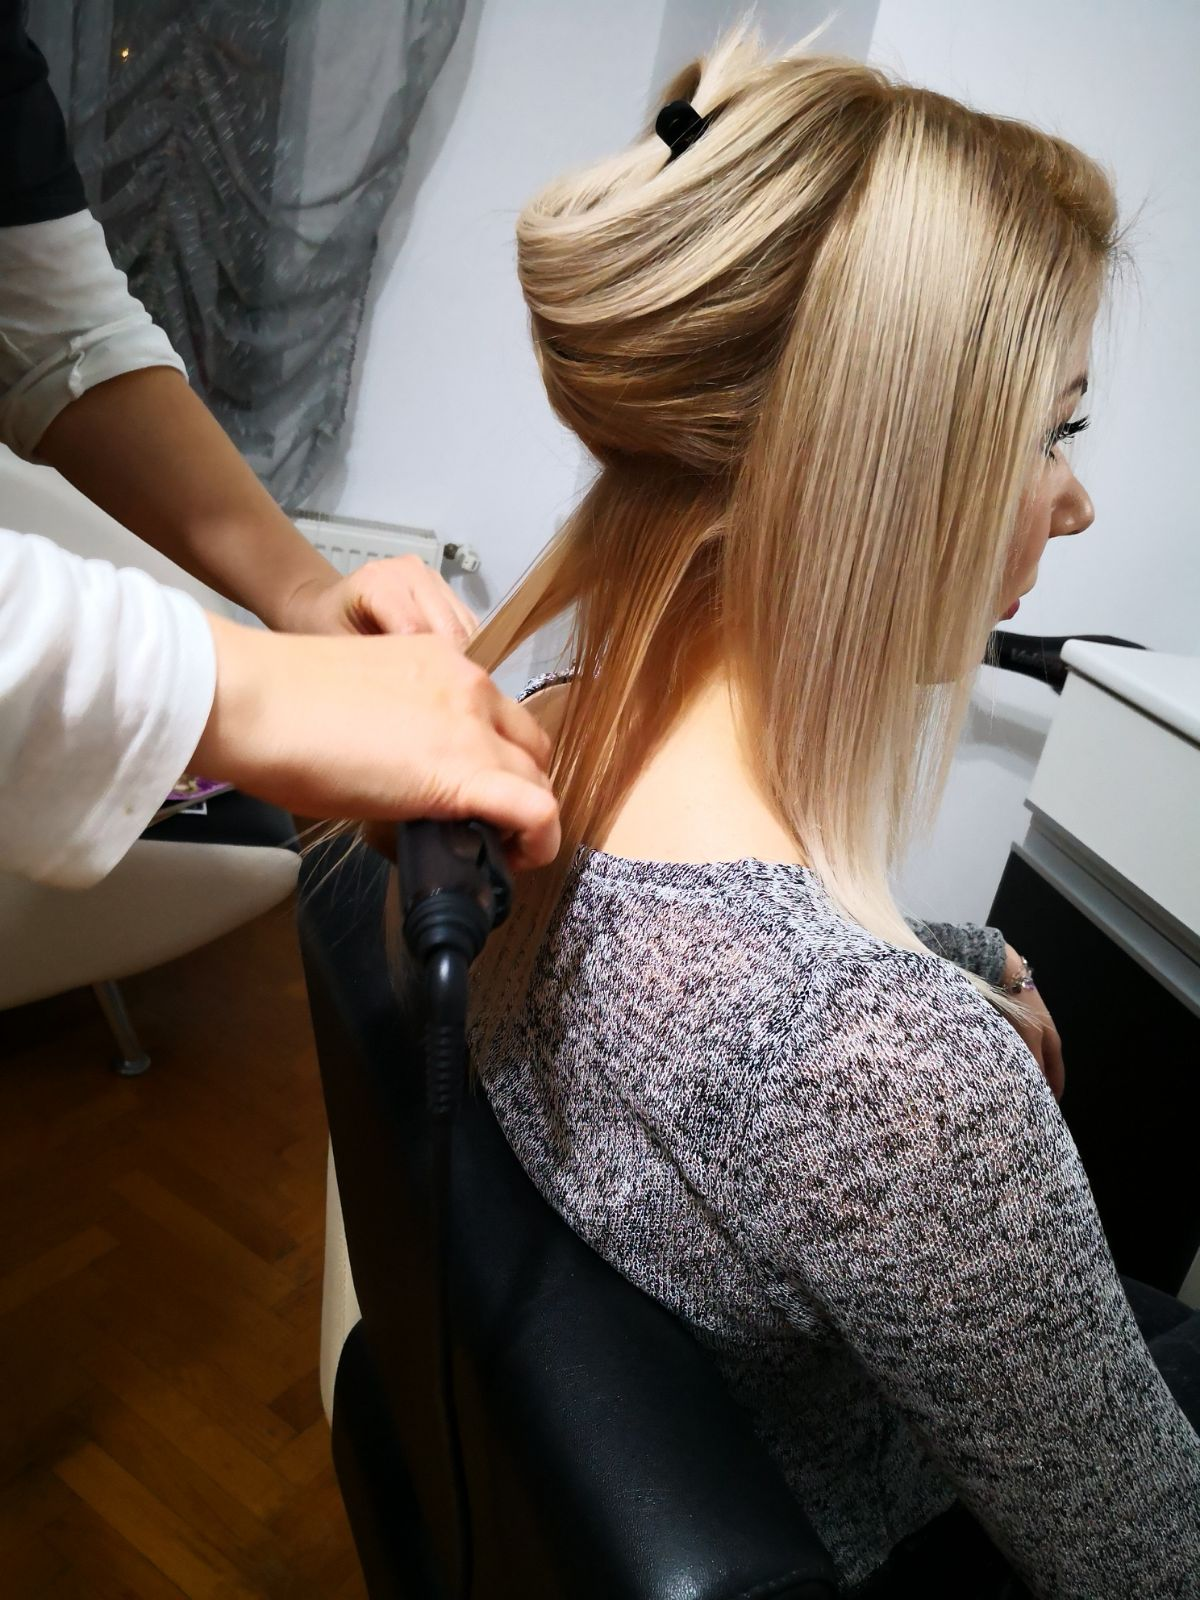 blonde hairstyle ksister's salon